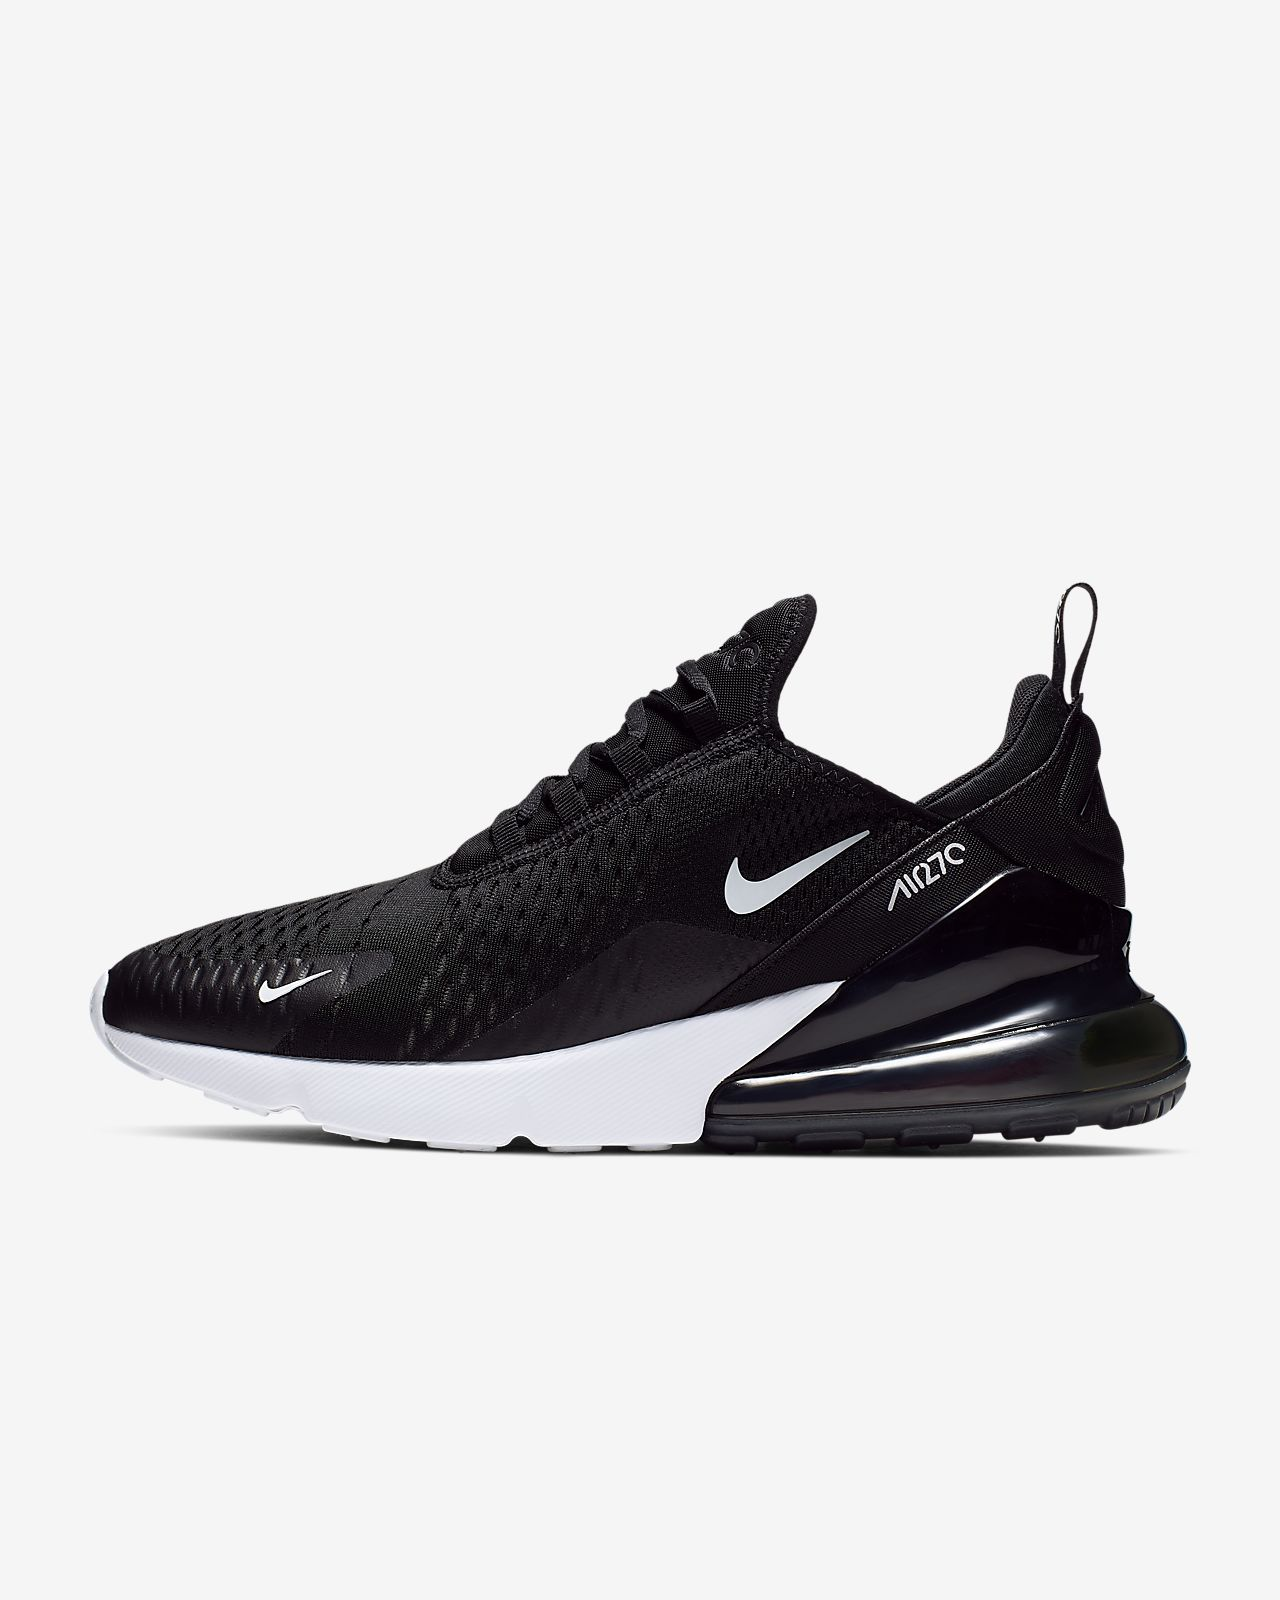 super specials shop best sellers info for Chaussure Nike Air Max 270 pour Homme